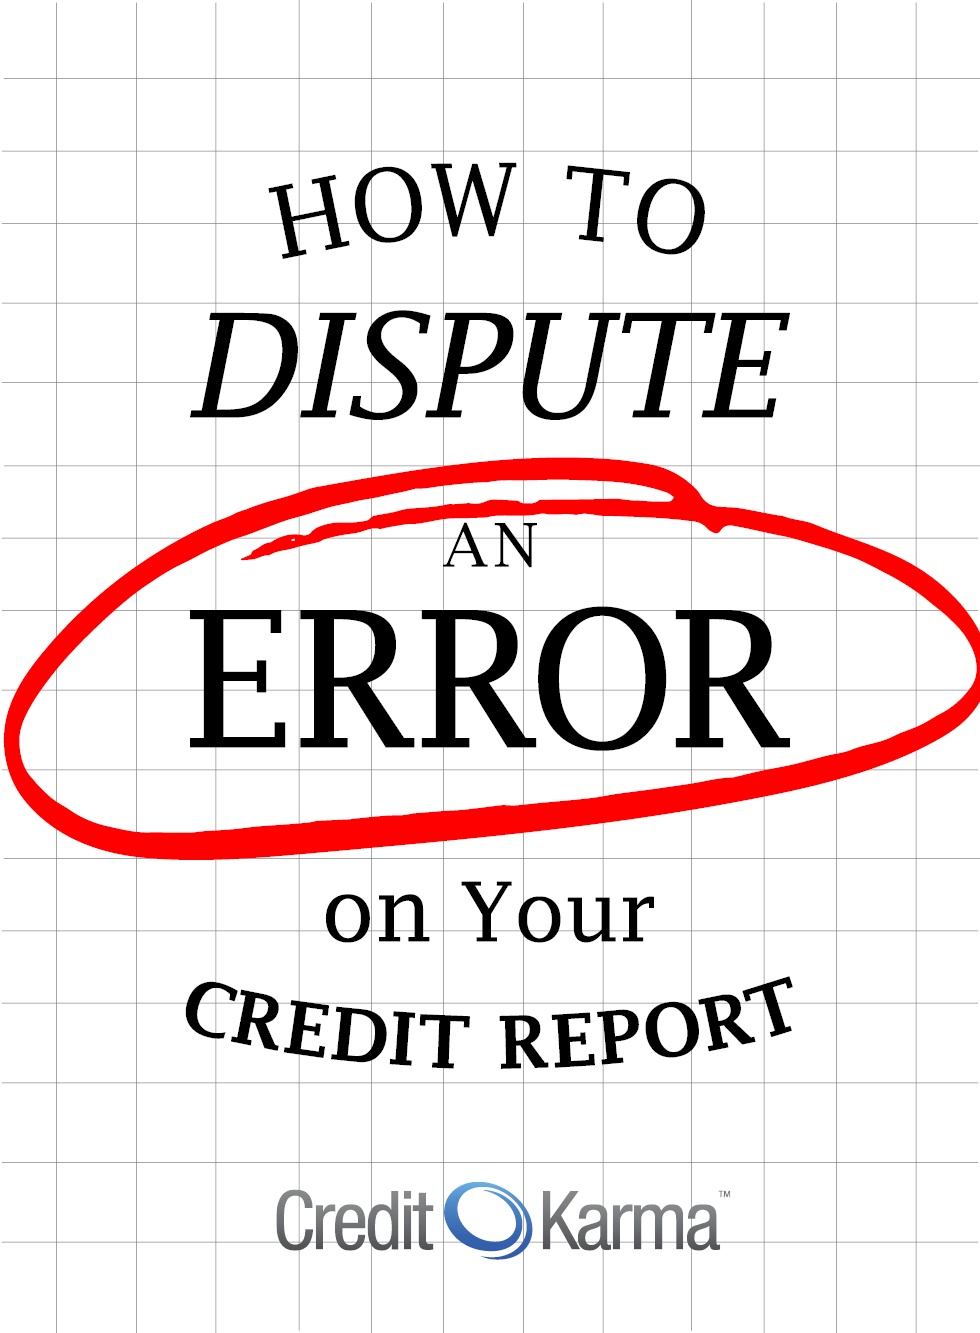 How To Dispute An Error On Your Credit Report Httpswww. Whole Term Life Insurance Ohare Airport Wifi. Delaware Pension Office Nephrostomy Tube Care. Banquet Hall In Ahmedabad University Of Mass. Good Credit Cards For No Credit. Can You Get Birth Control At Cvs. La Insurance Phoenix Az Temp Health Insurance. Screen Printing By Hand Spanish Word For East. What Education Means To Me Essay